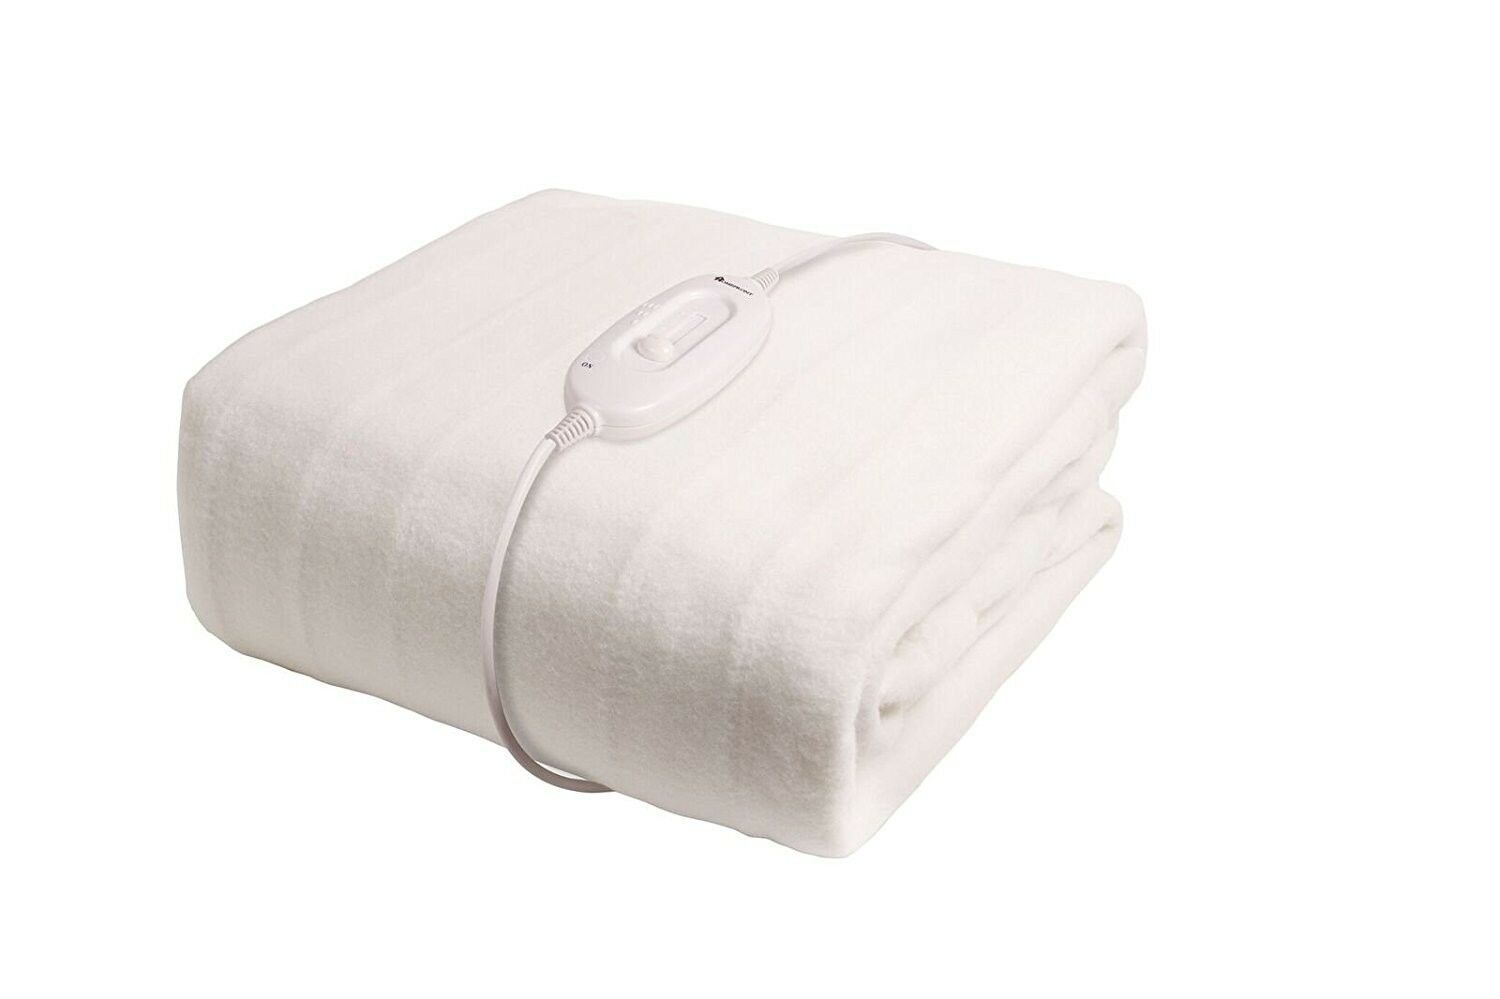 HOMEFRONT FULLY FITTED WASHABLE SINGLE Größe MATTRESS COVER (200 x 107 cm) by HOM